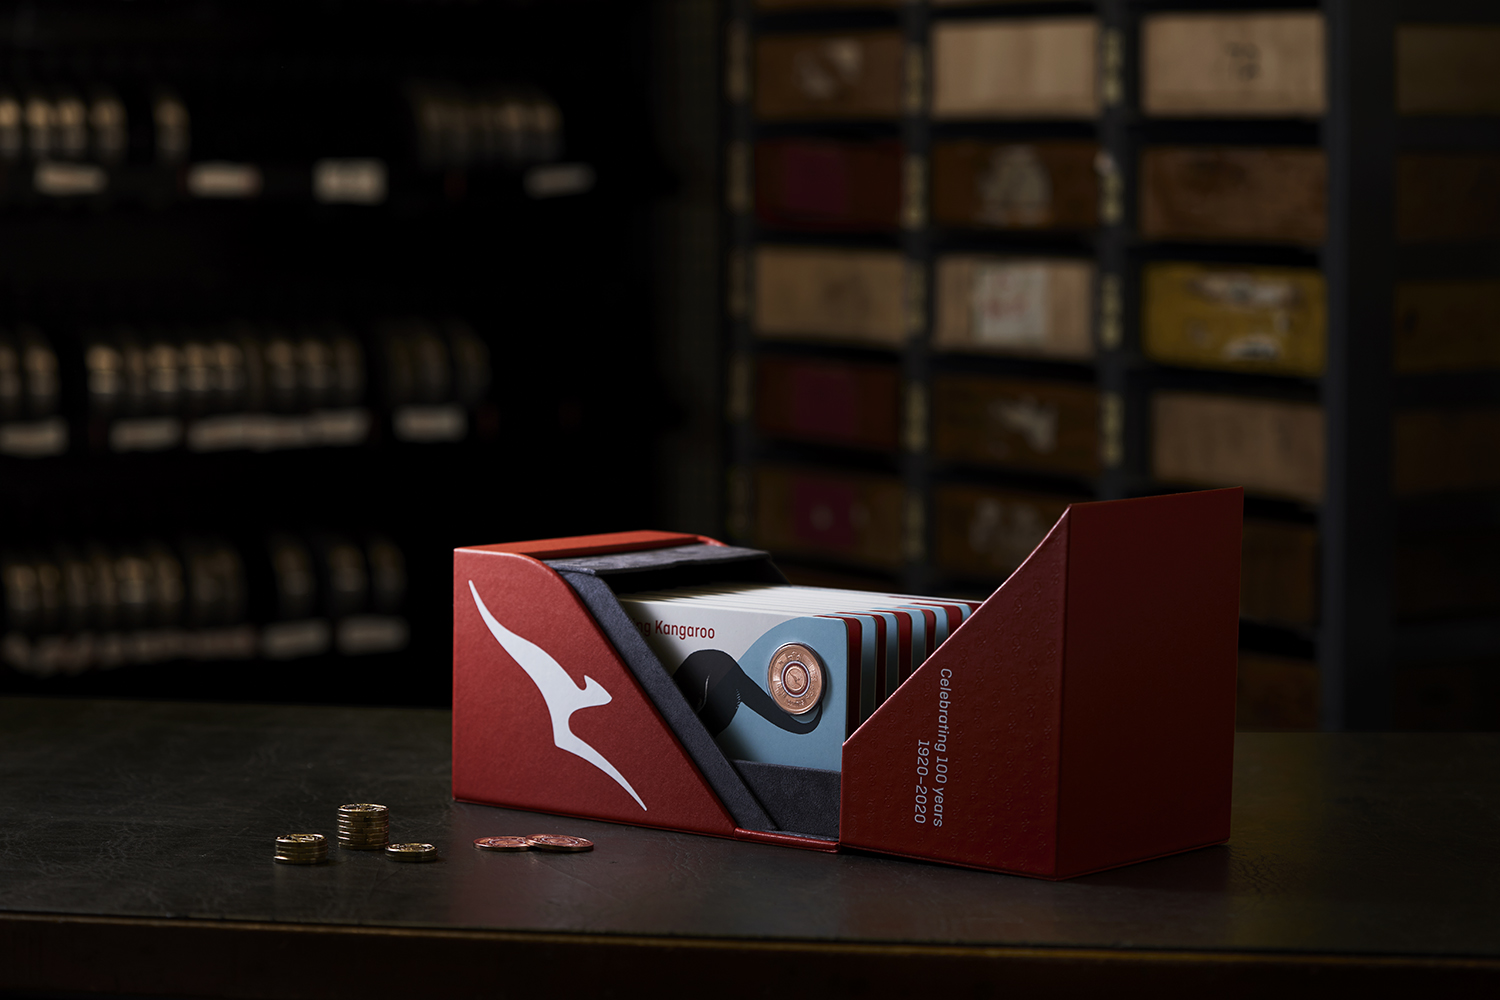 Royal Australian Mint advertising and product photography, by canberra photographer